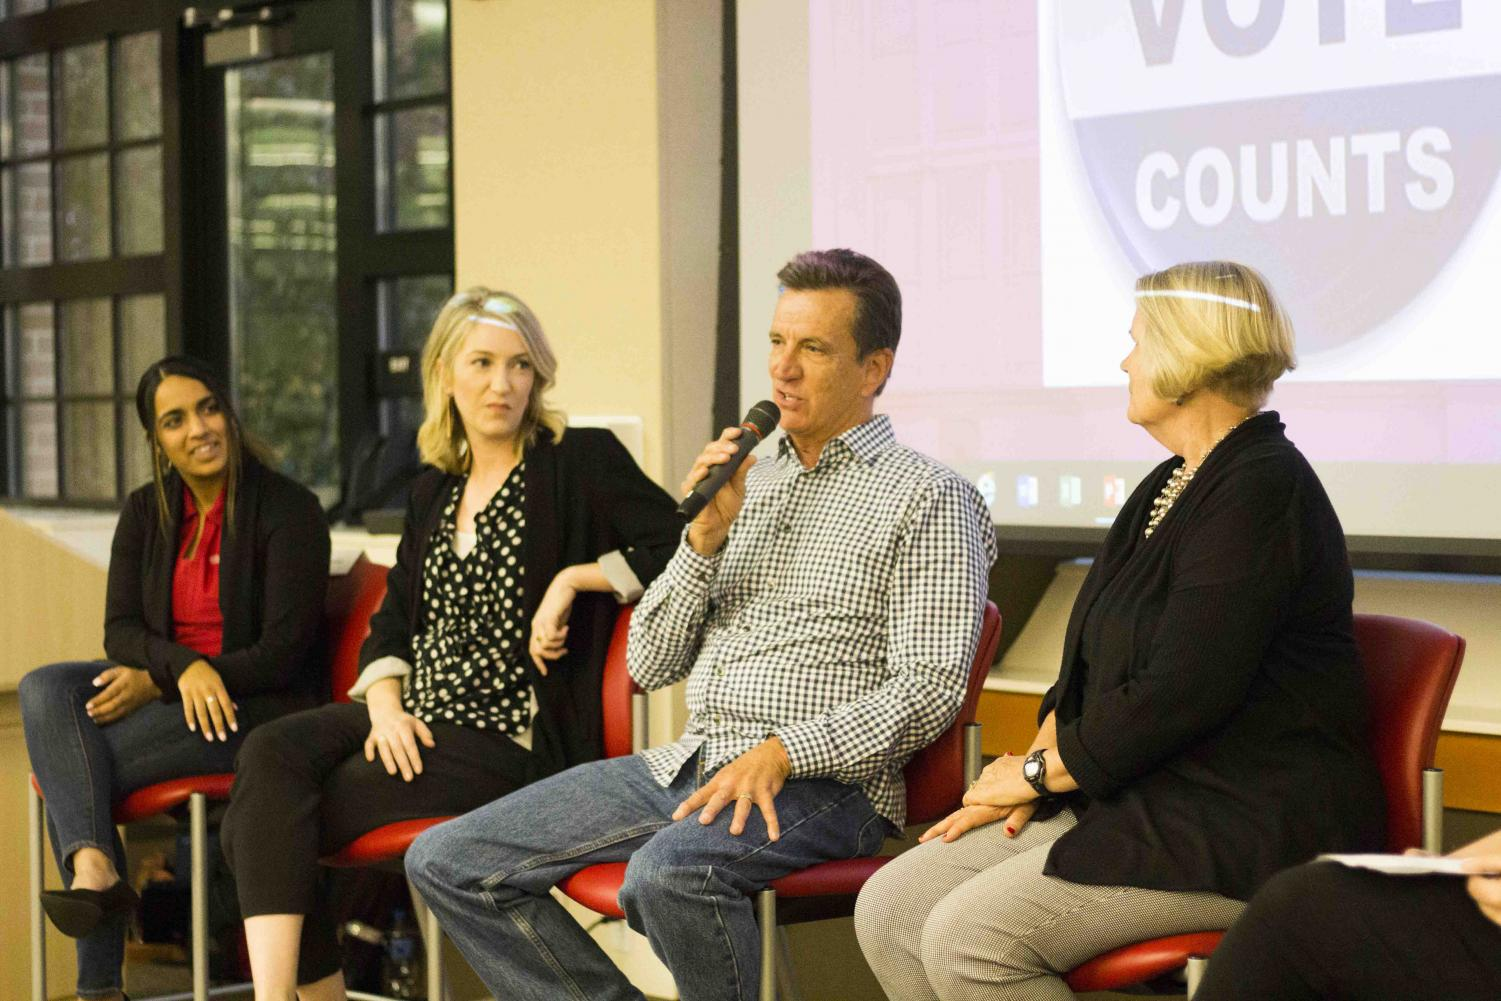 Former Mayor of Chico Dan Herbert (third from left) speaks on his civic engagement work during Wildcat Vote on Tuesday night. Others pictured are Alisa Sharma (left), Audrey Denney (middle left) and Ann Schwab (right). Photo credit: Brian Luong